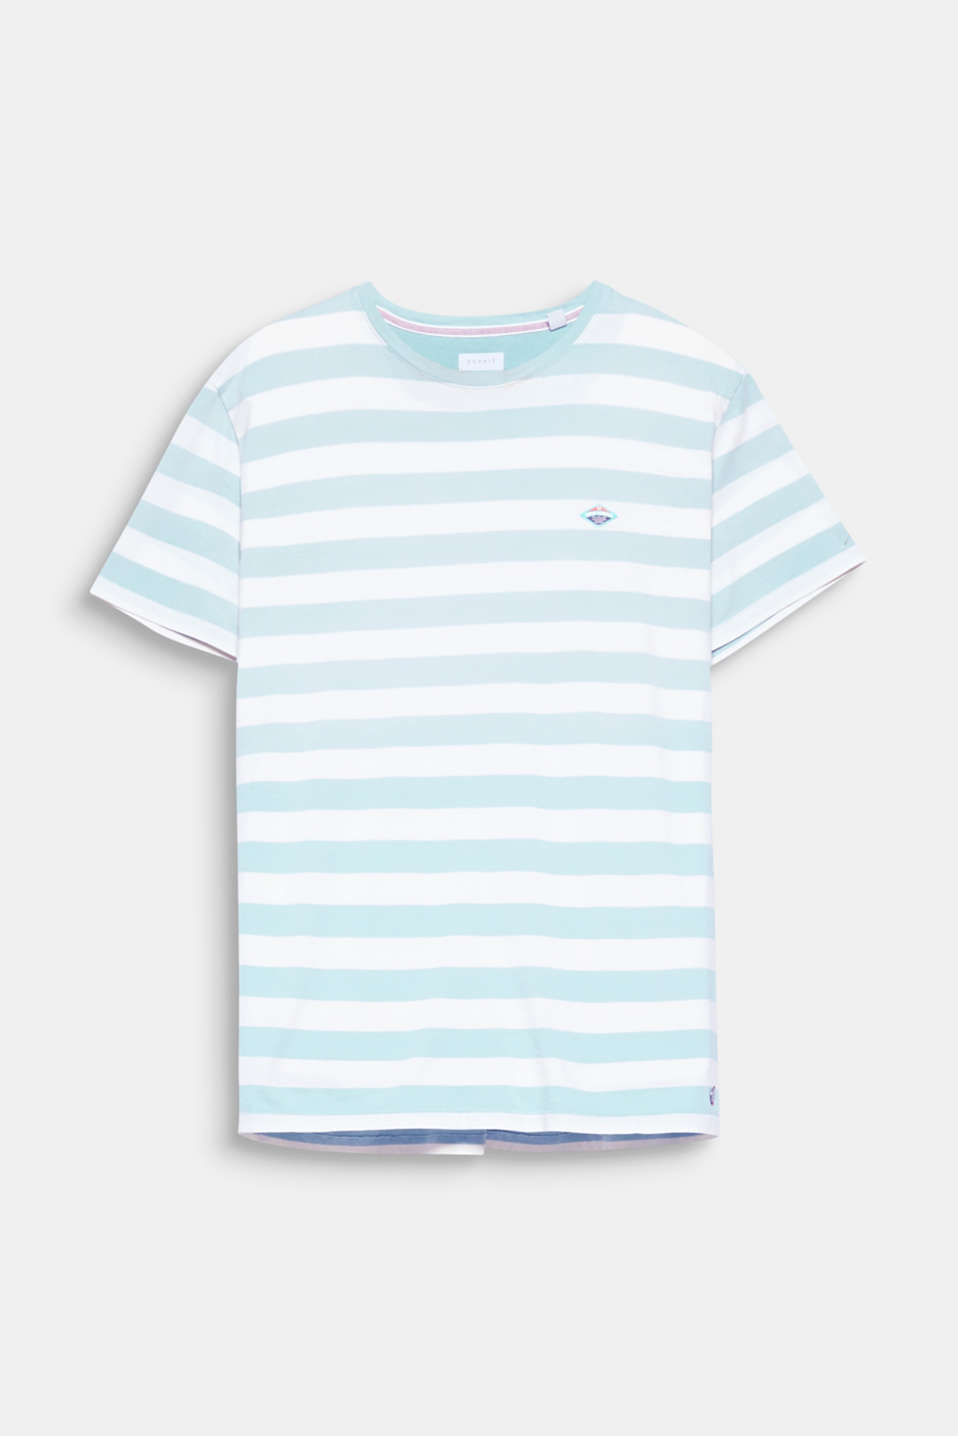 Bold stripes with colour gradation make this T-shirt really eye-catching.